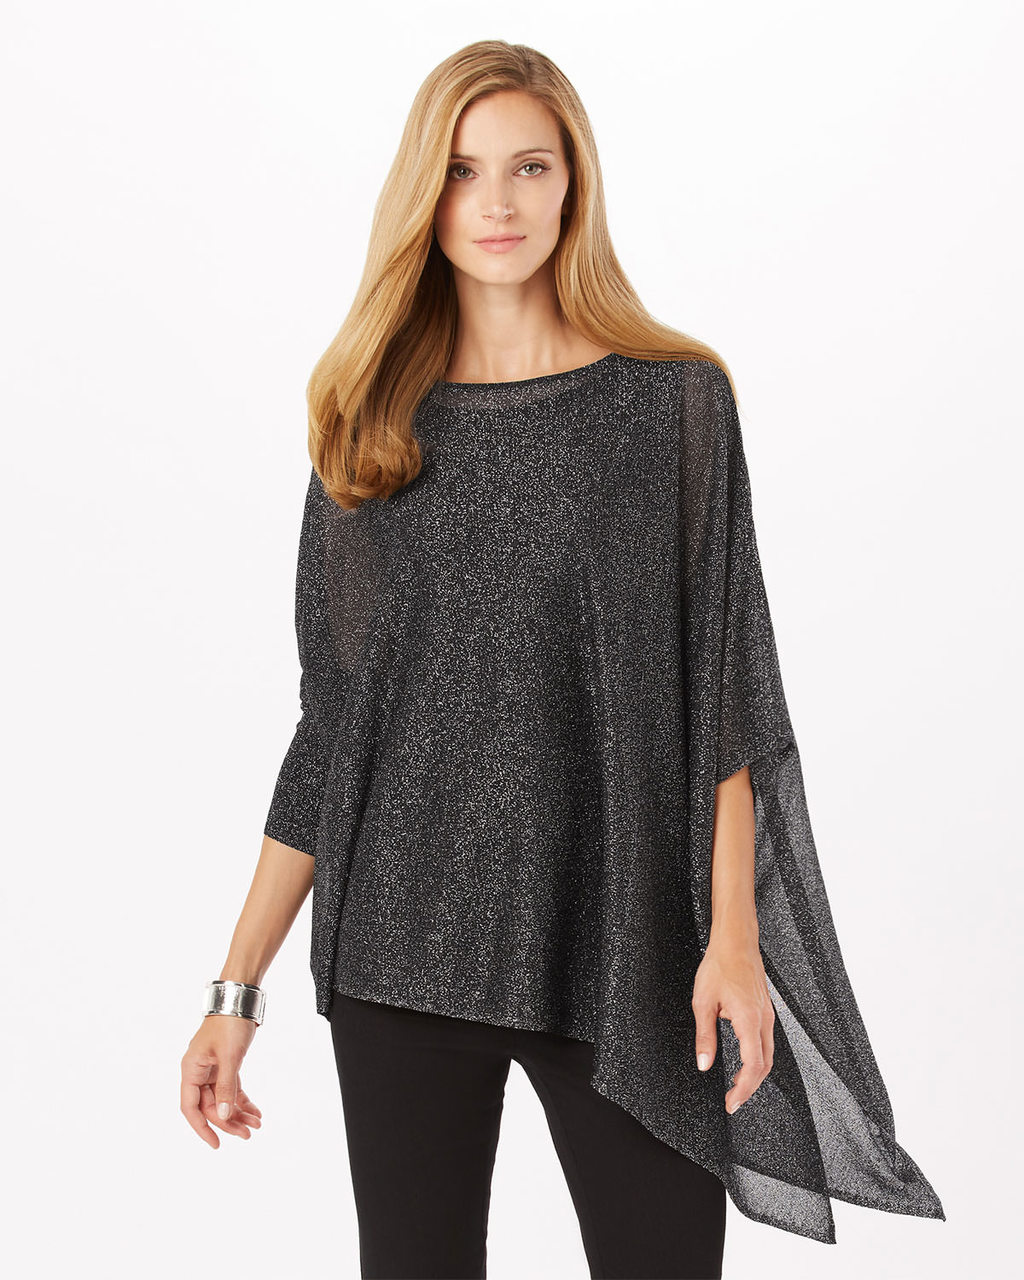 Shimmer Nieve Knit - neckline: round neck; sleeve style: dolman/batwing; pattern: plain; length: below the bottom; style: tunic; predominant colour: charcoal; occasions: casual, creative work; fit: loose; hip detail: dip hem; sleeve length: 3/4 length; texture group: knits/crochet; pattern type: knitted - fine stitch; fibres: viscose/rayon - mix; season: a/w 2016